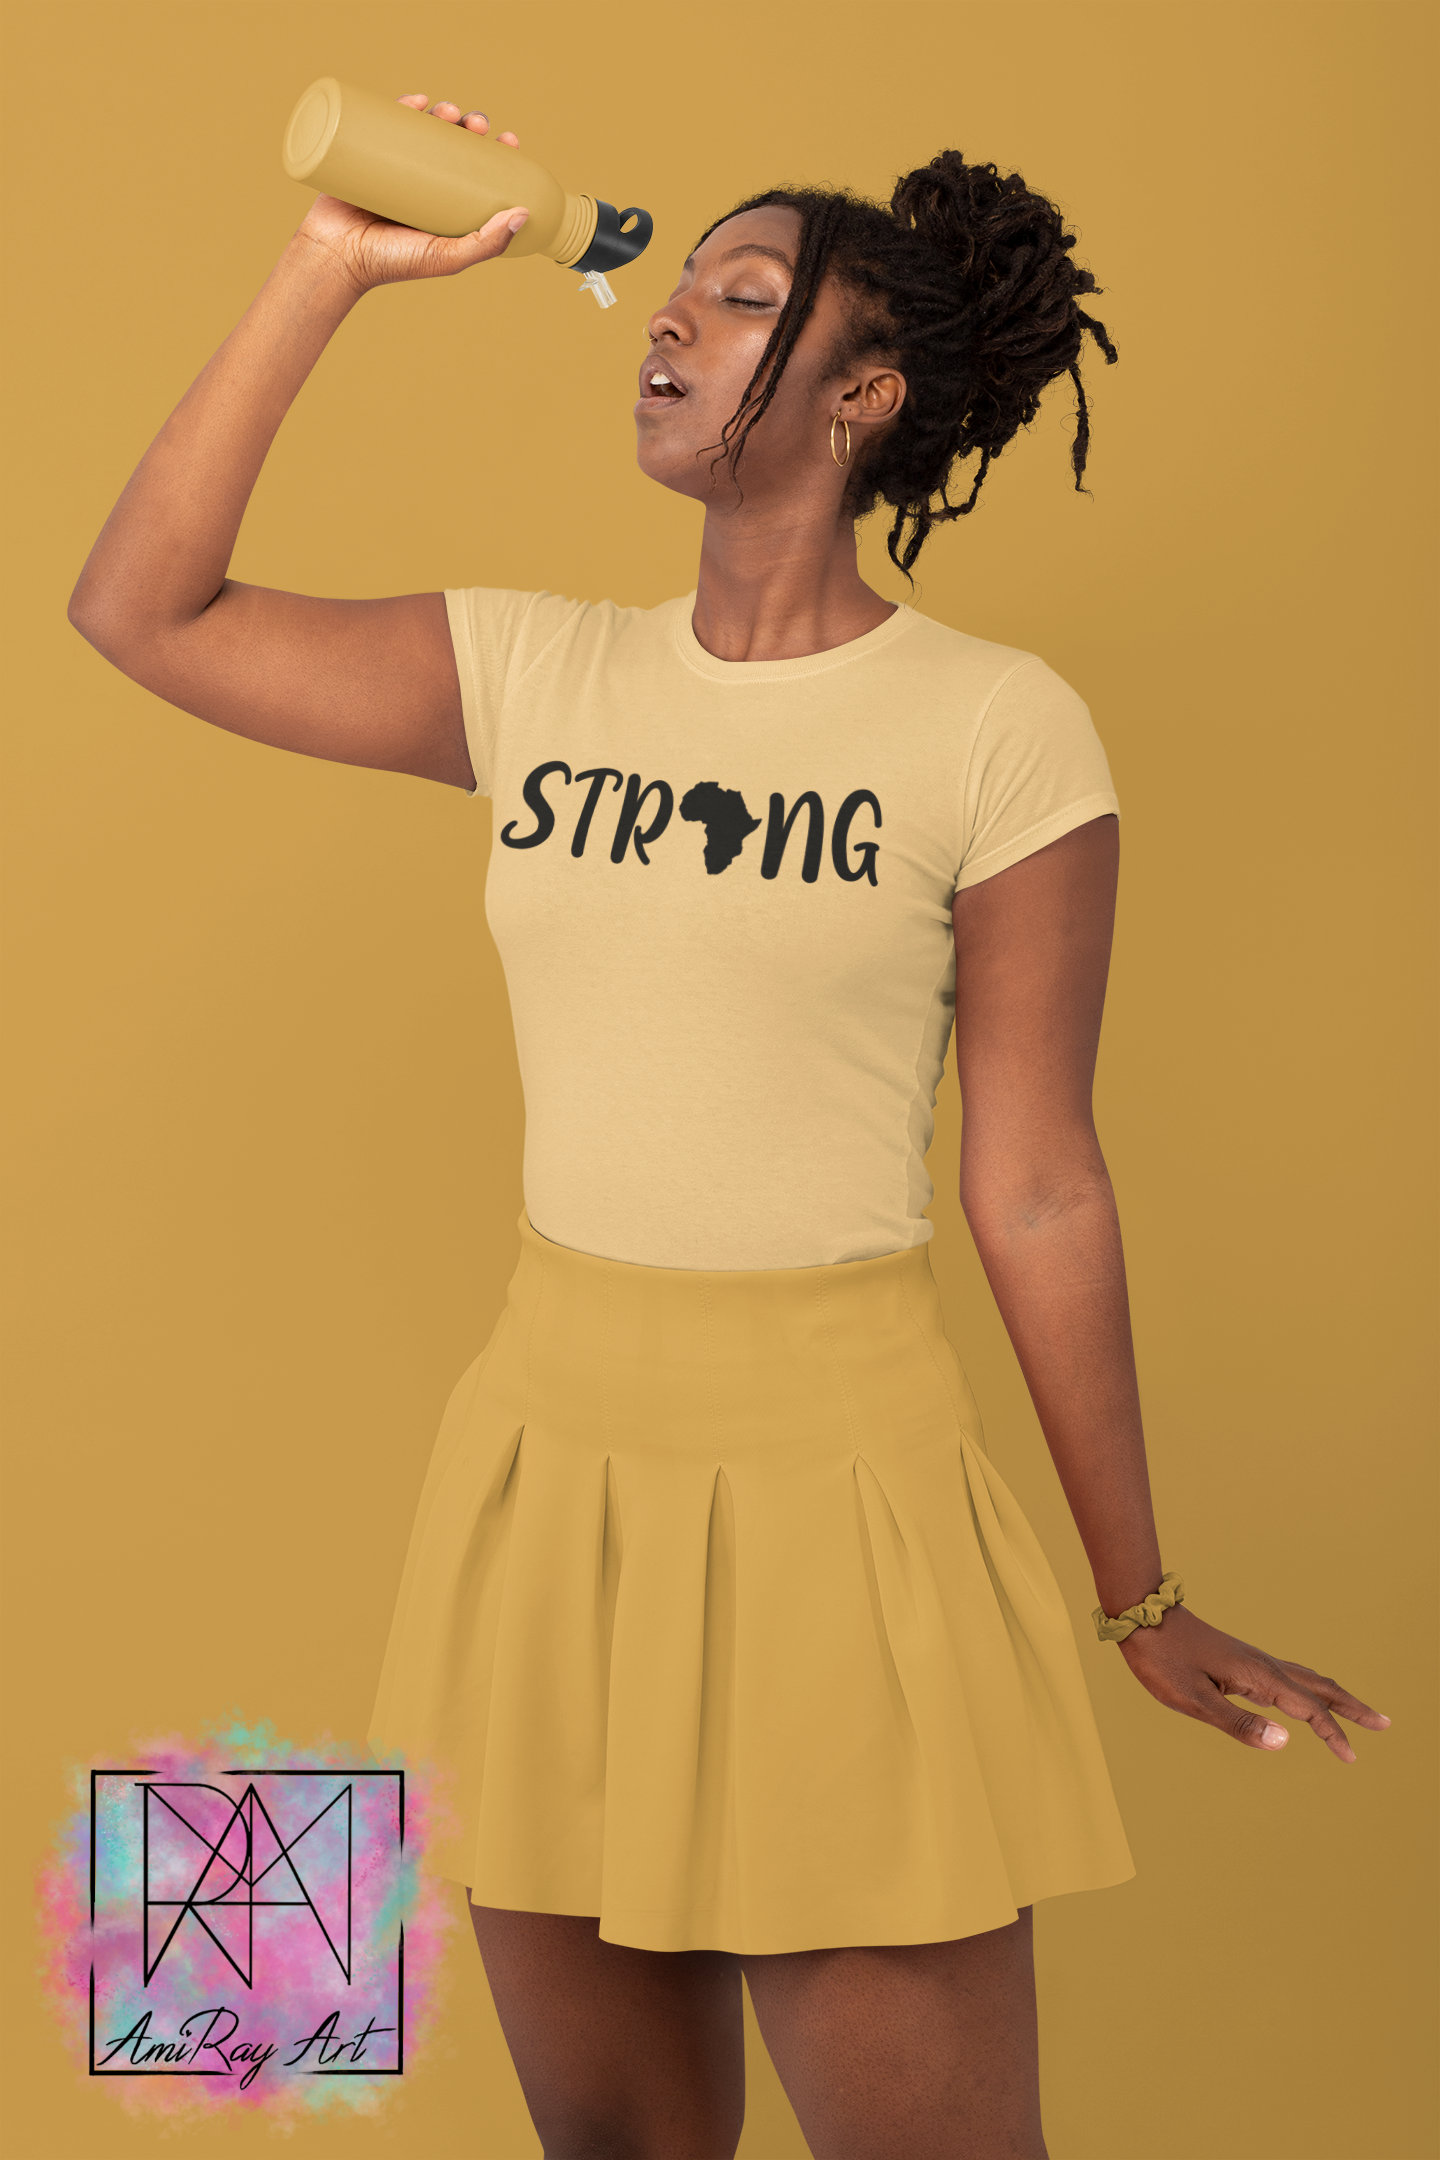 Strong afro mockup